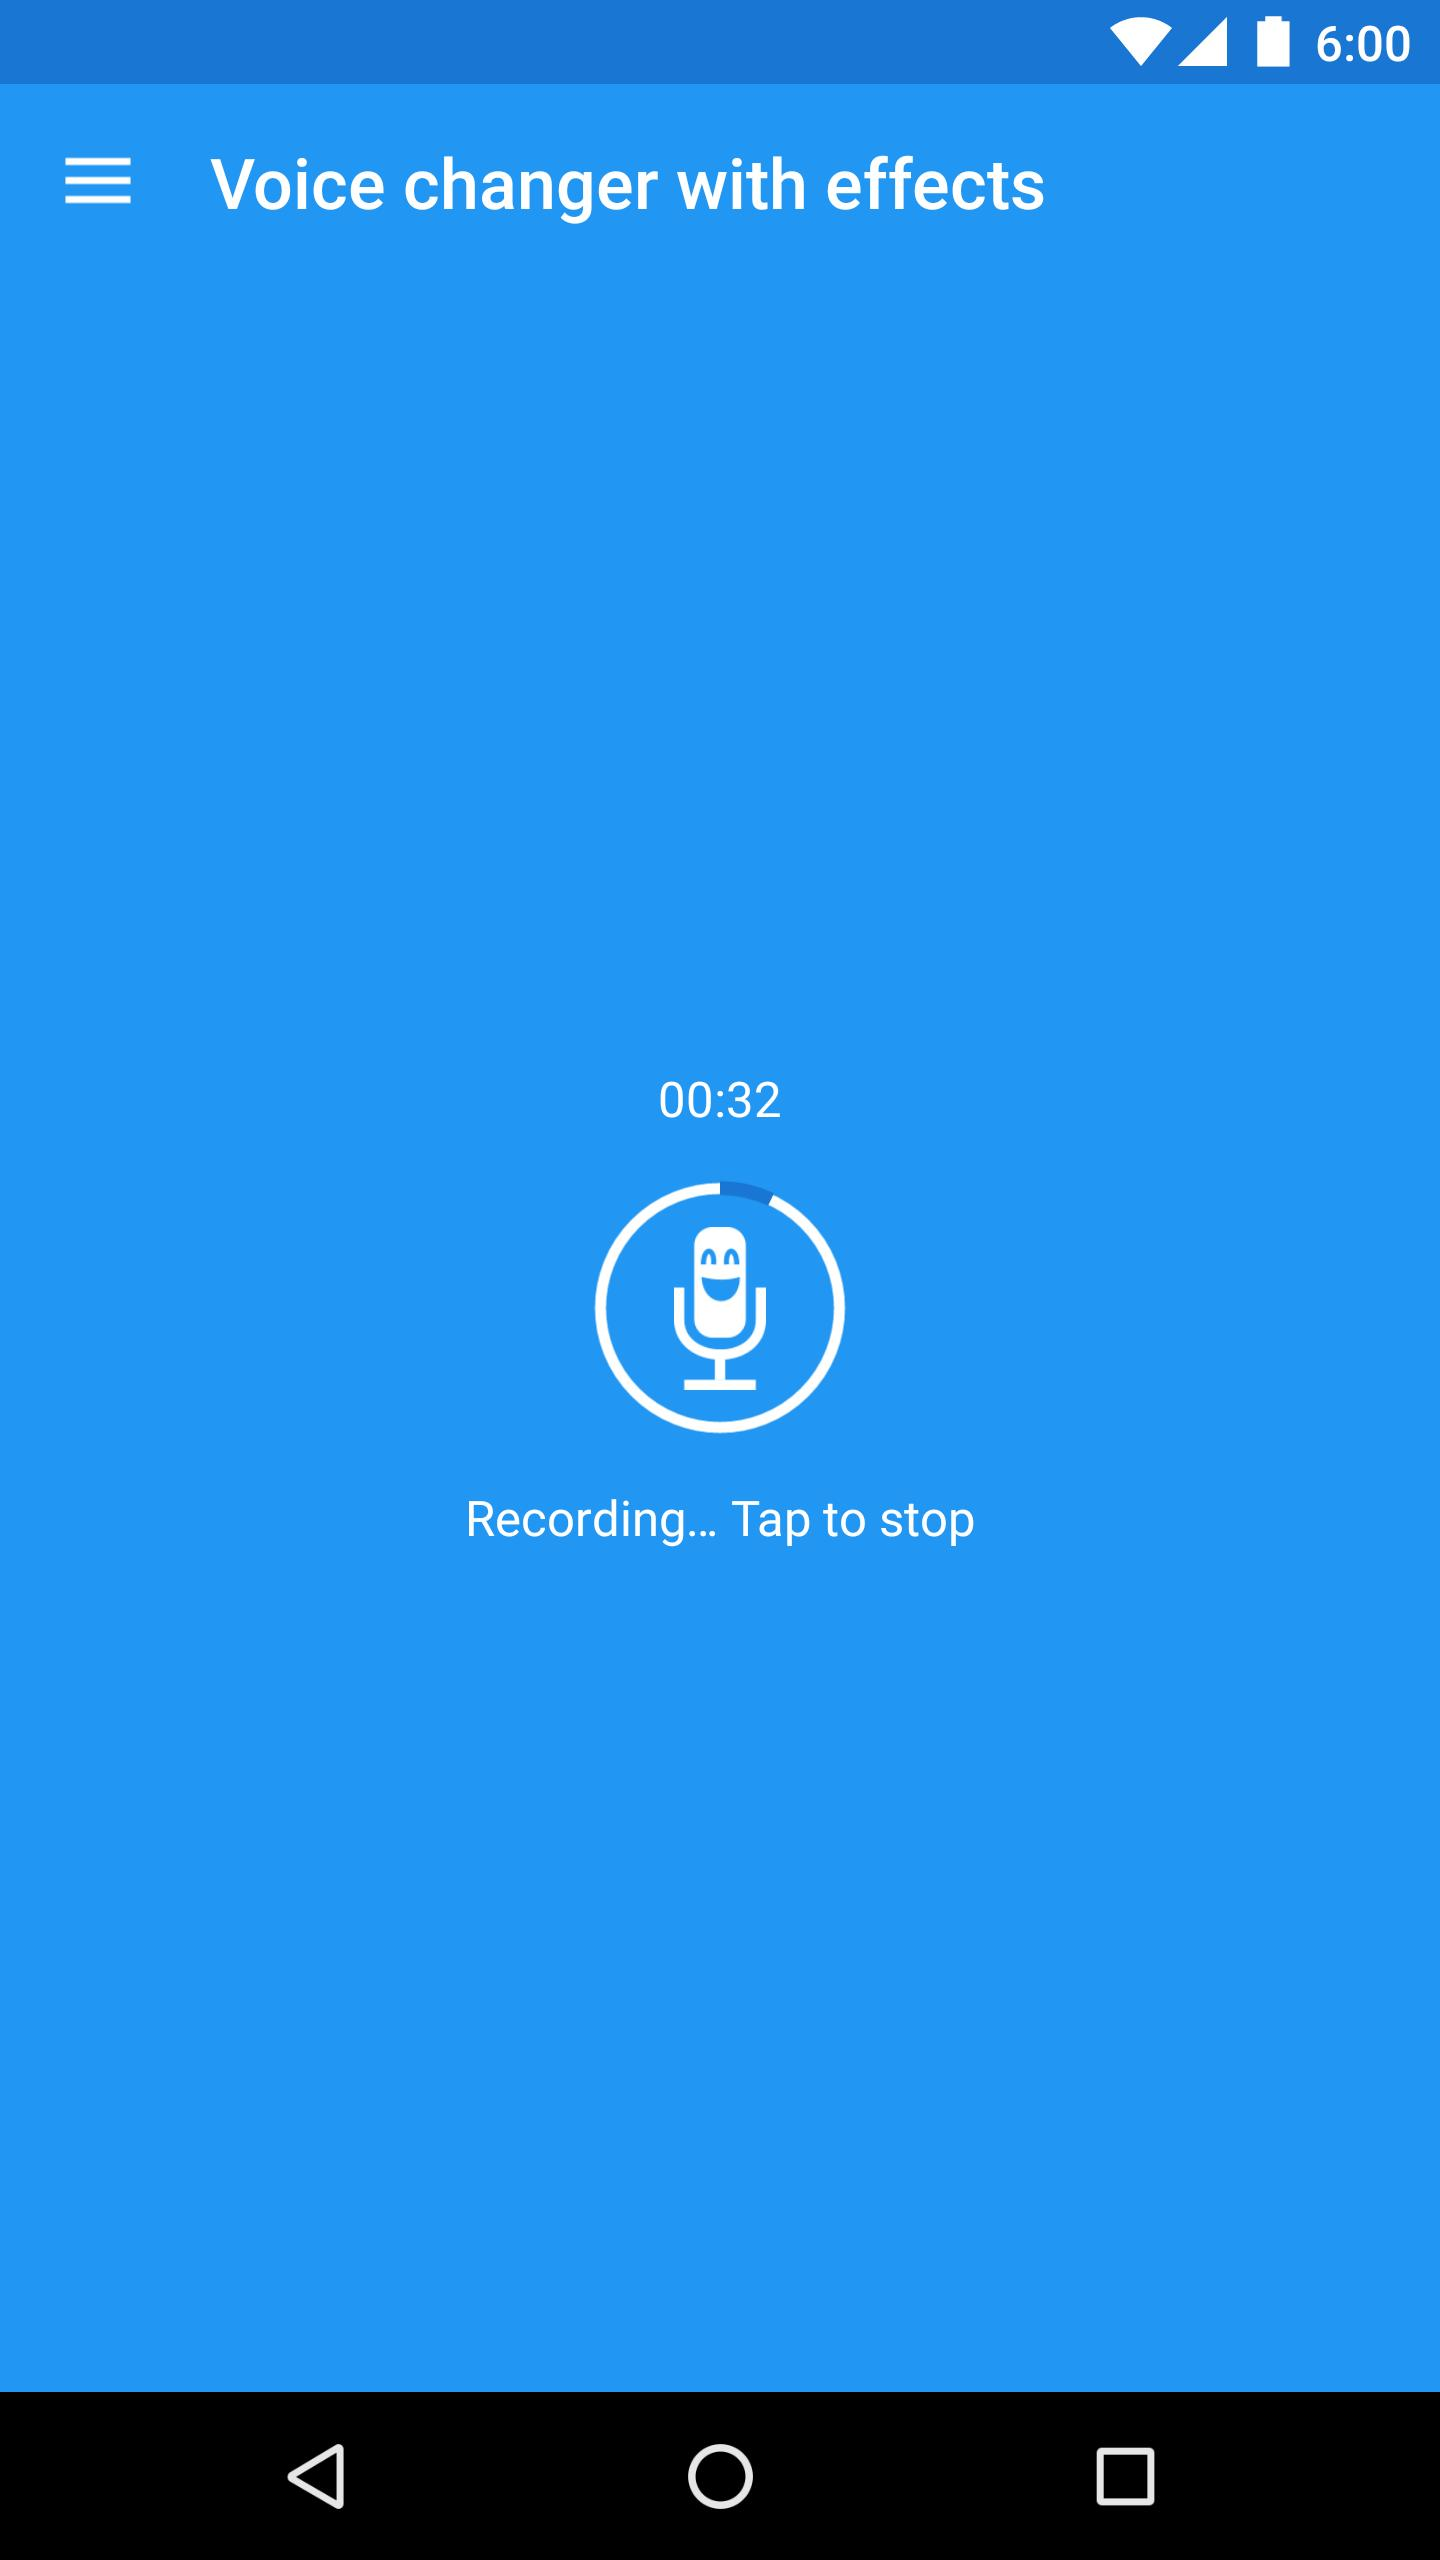 Voice changer with effects for Android - APK Download